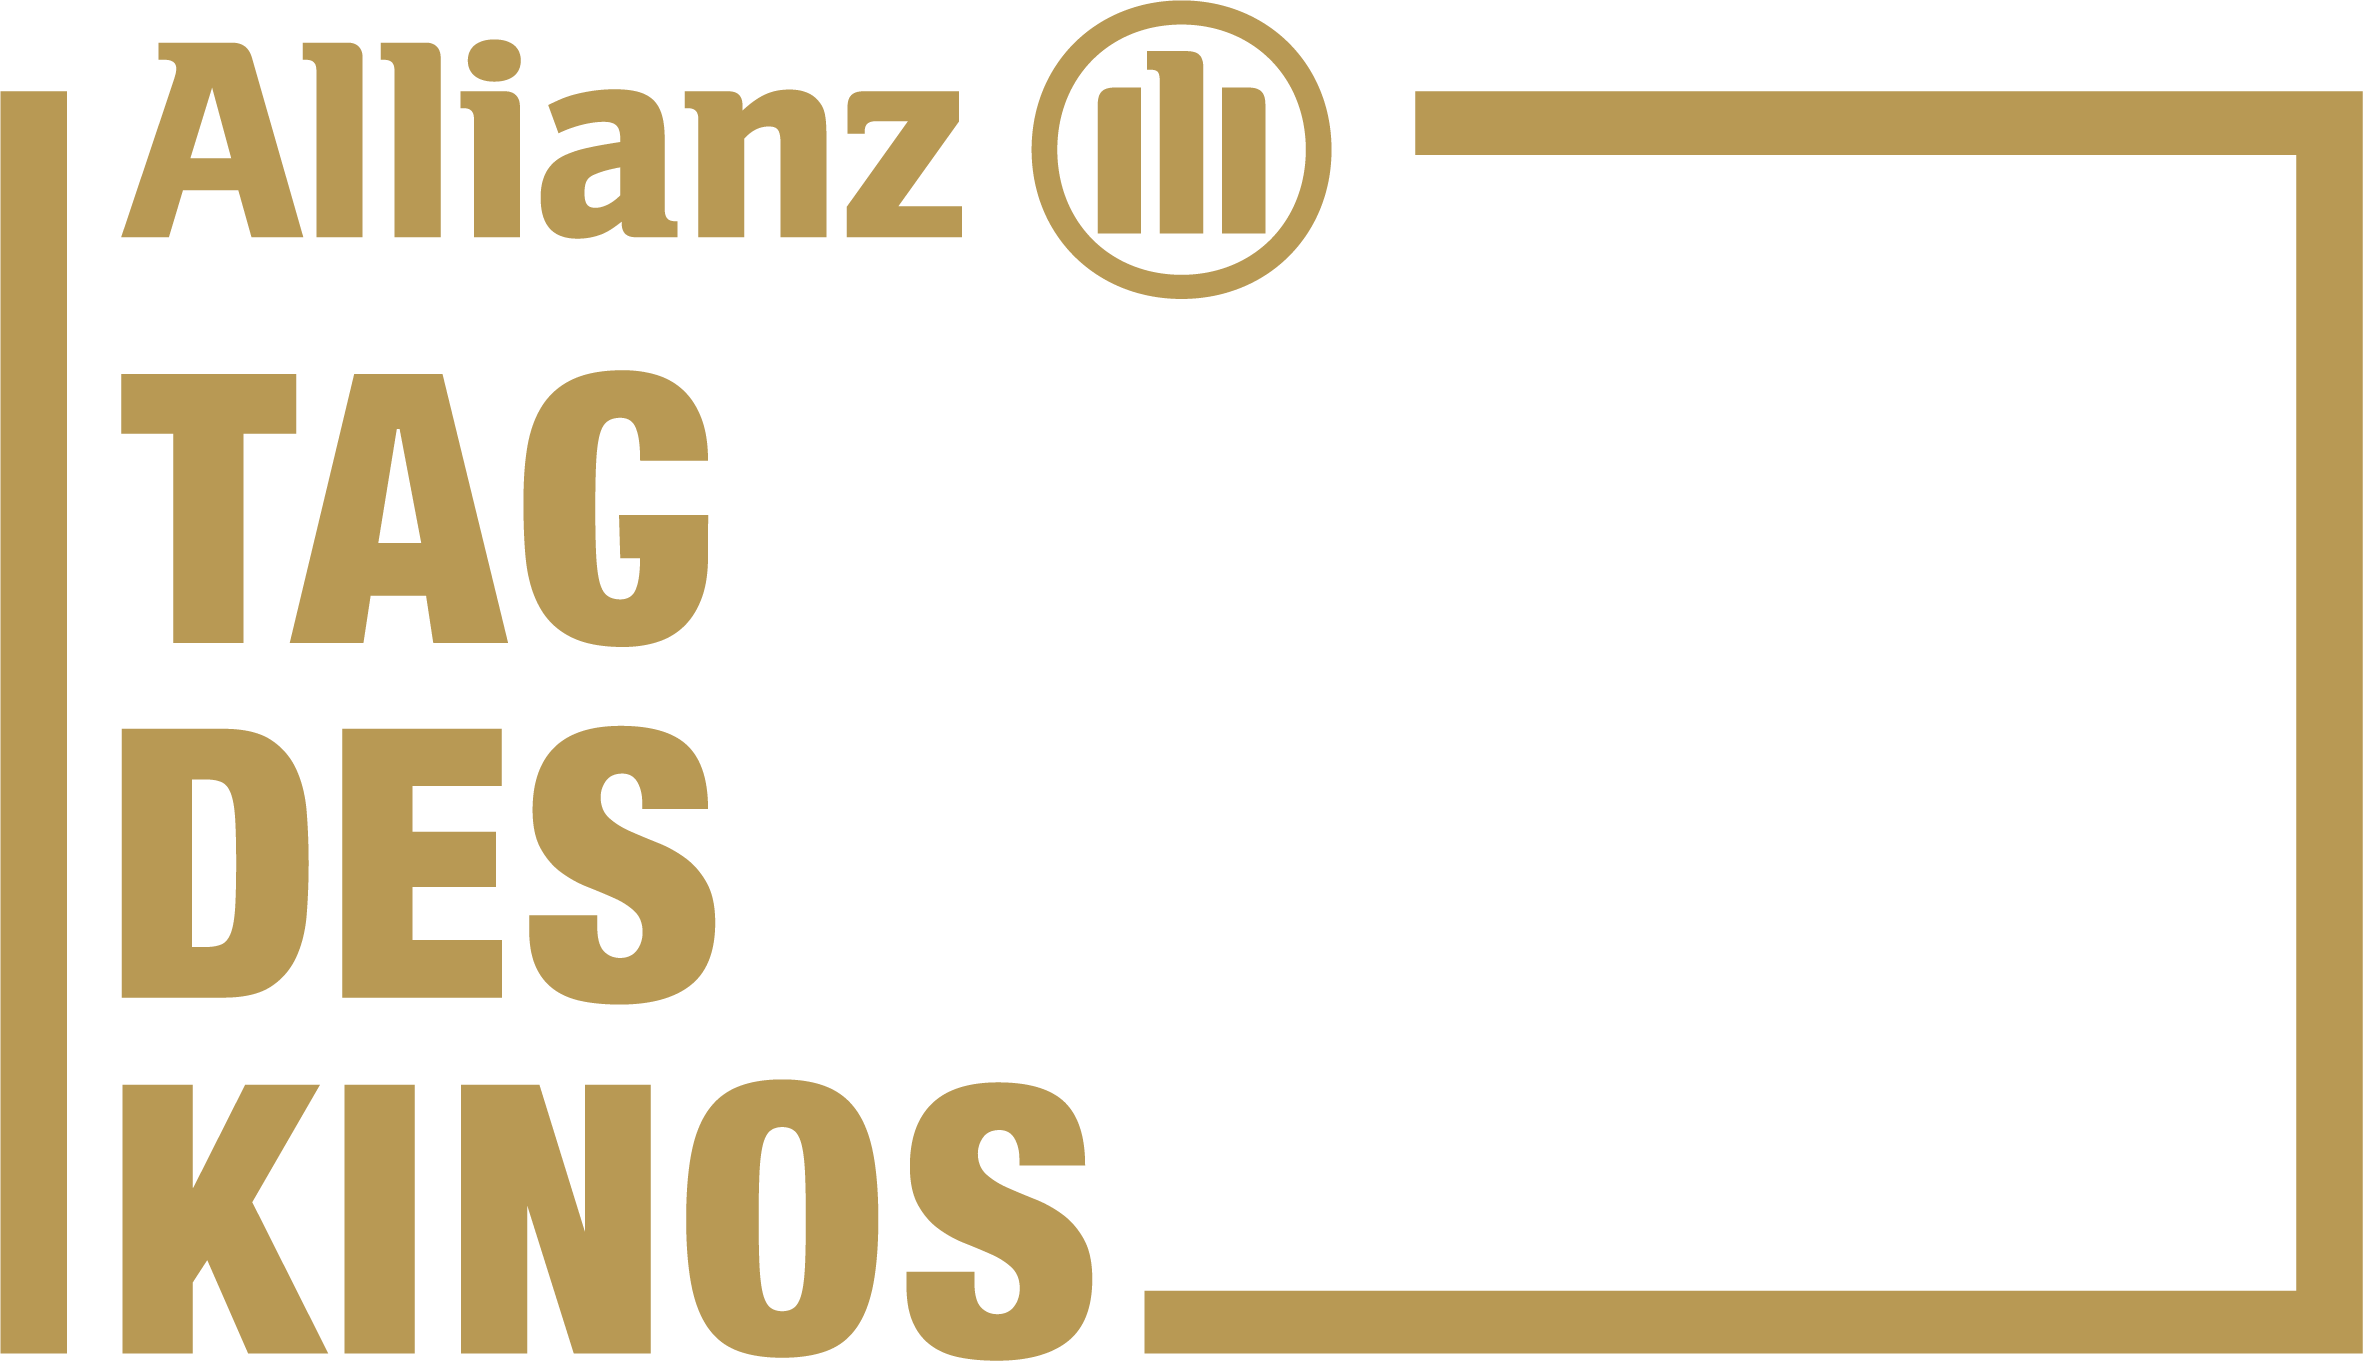 image-9703379-Allianz_Tag_des_Kinos_-_Journée_du_Cinéma_-_Giornata_del_Cinema_-_Titellogo_-_chd_-_ATDK_Logo_German_gold-d3d94.png